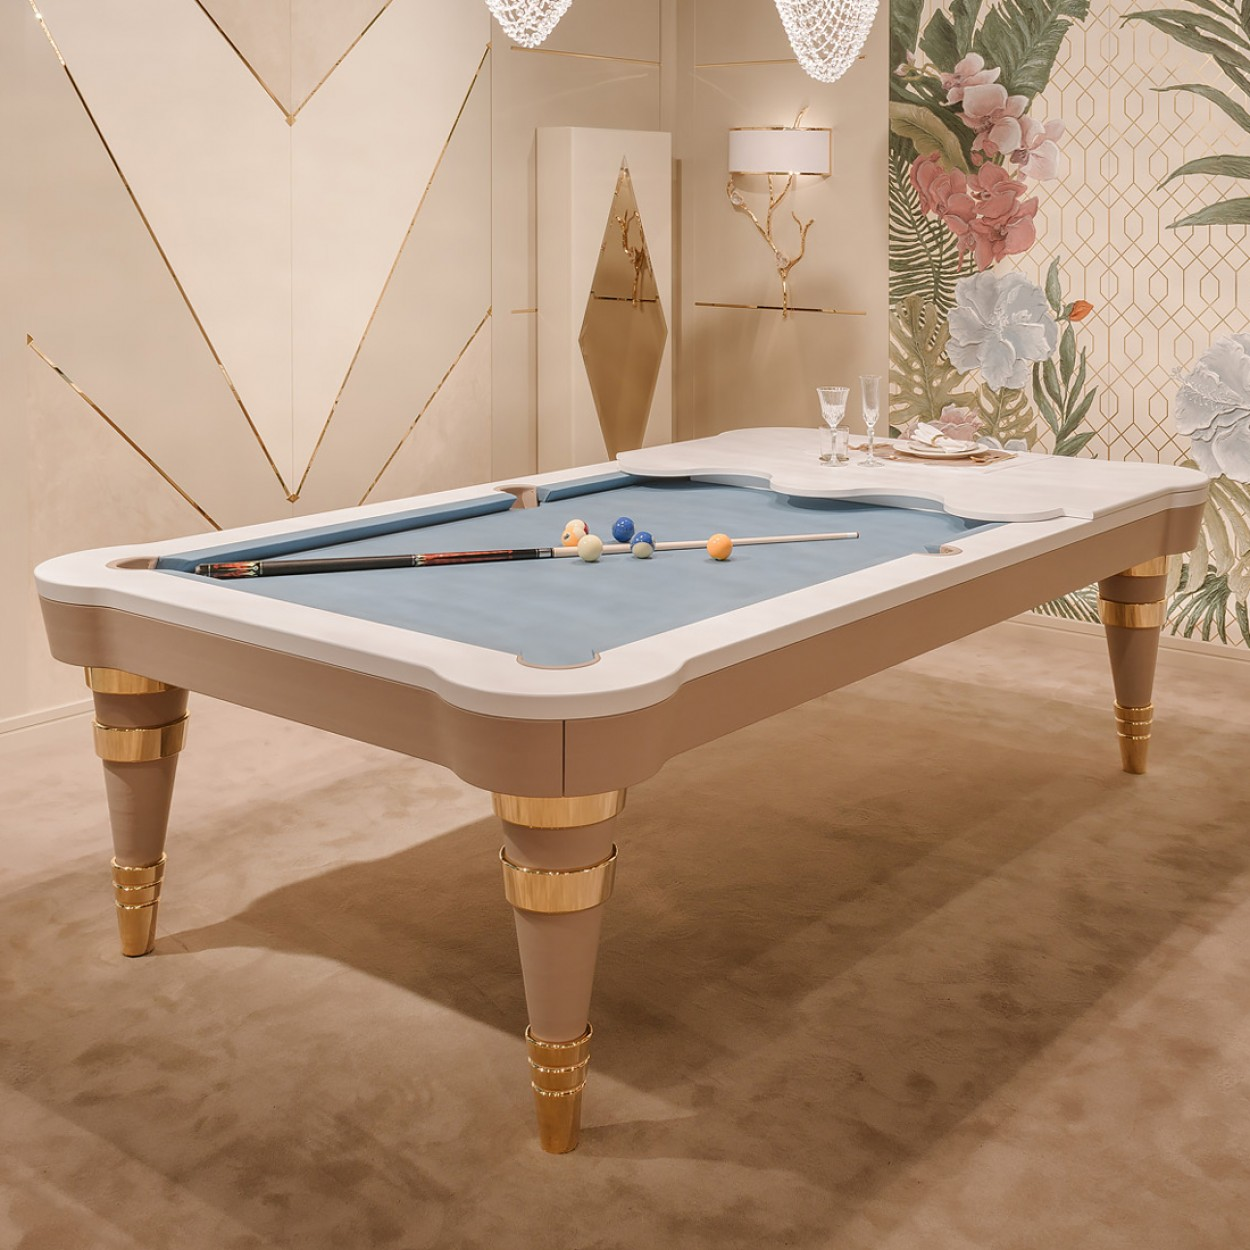 More New Italian Game Tables